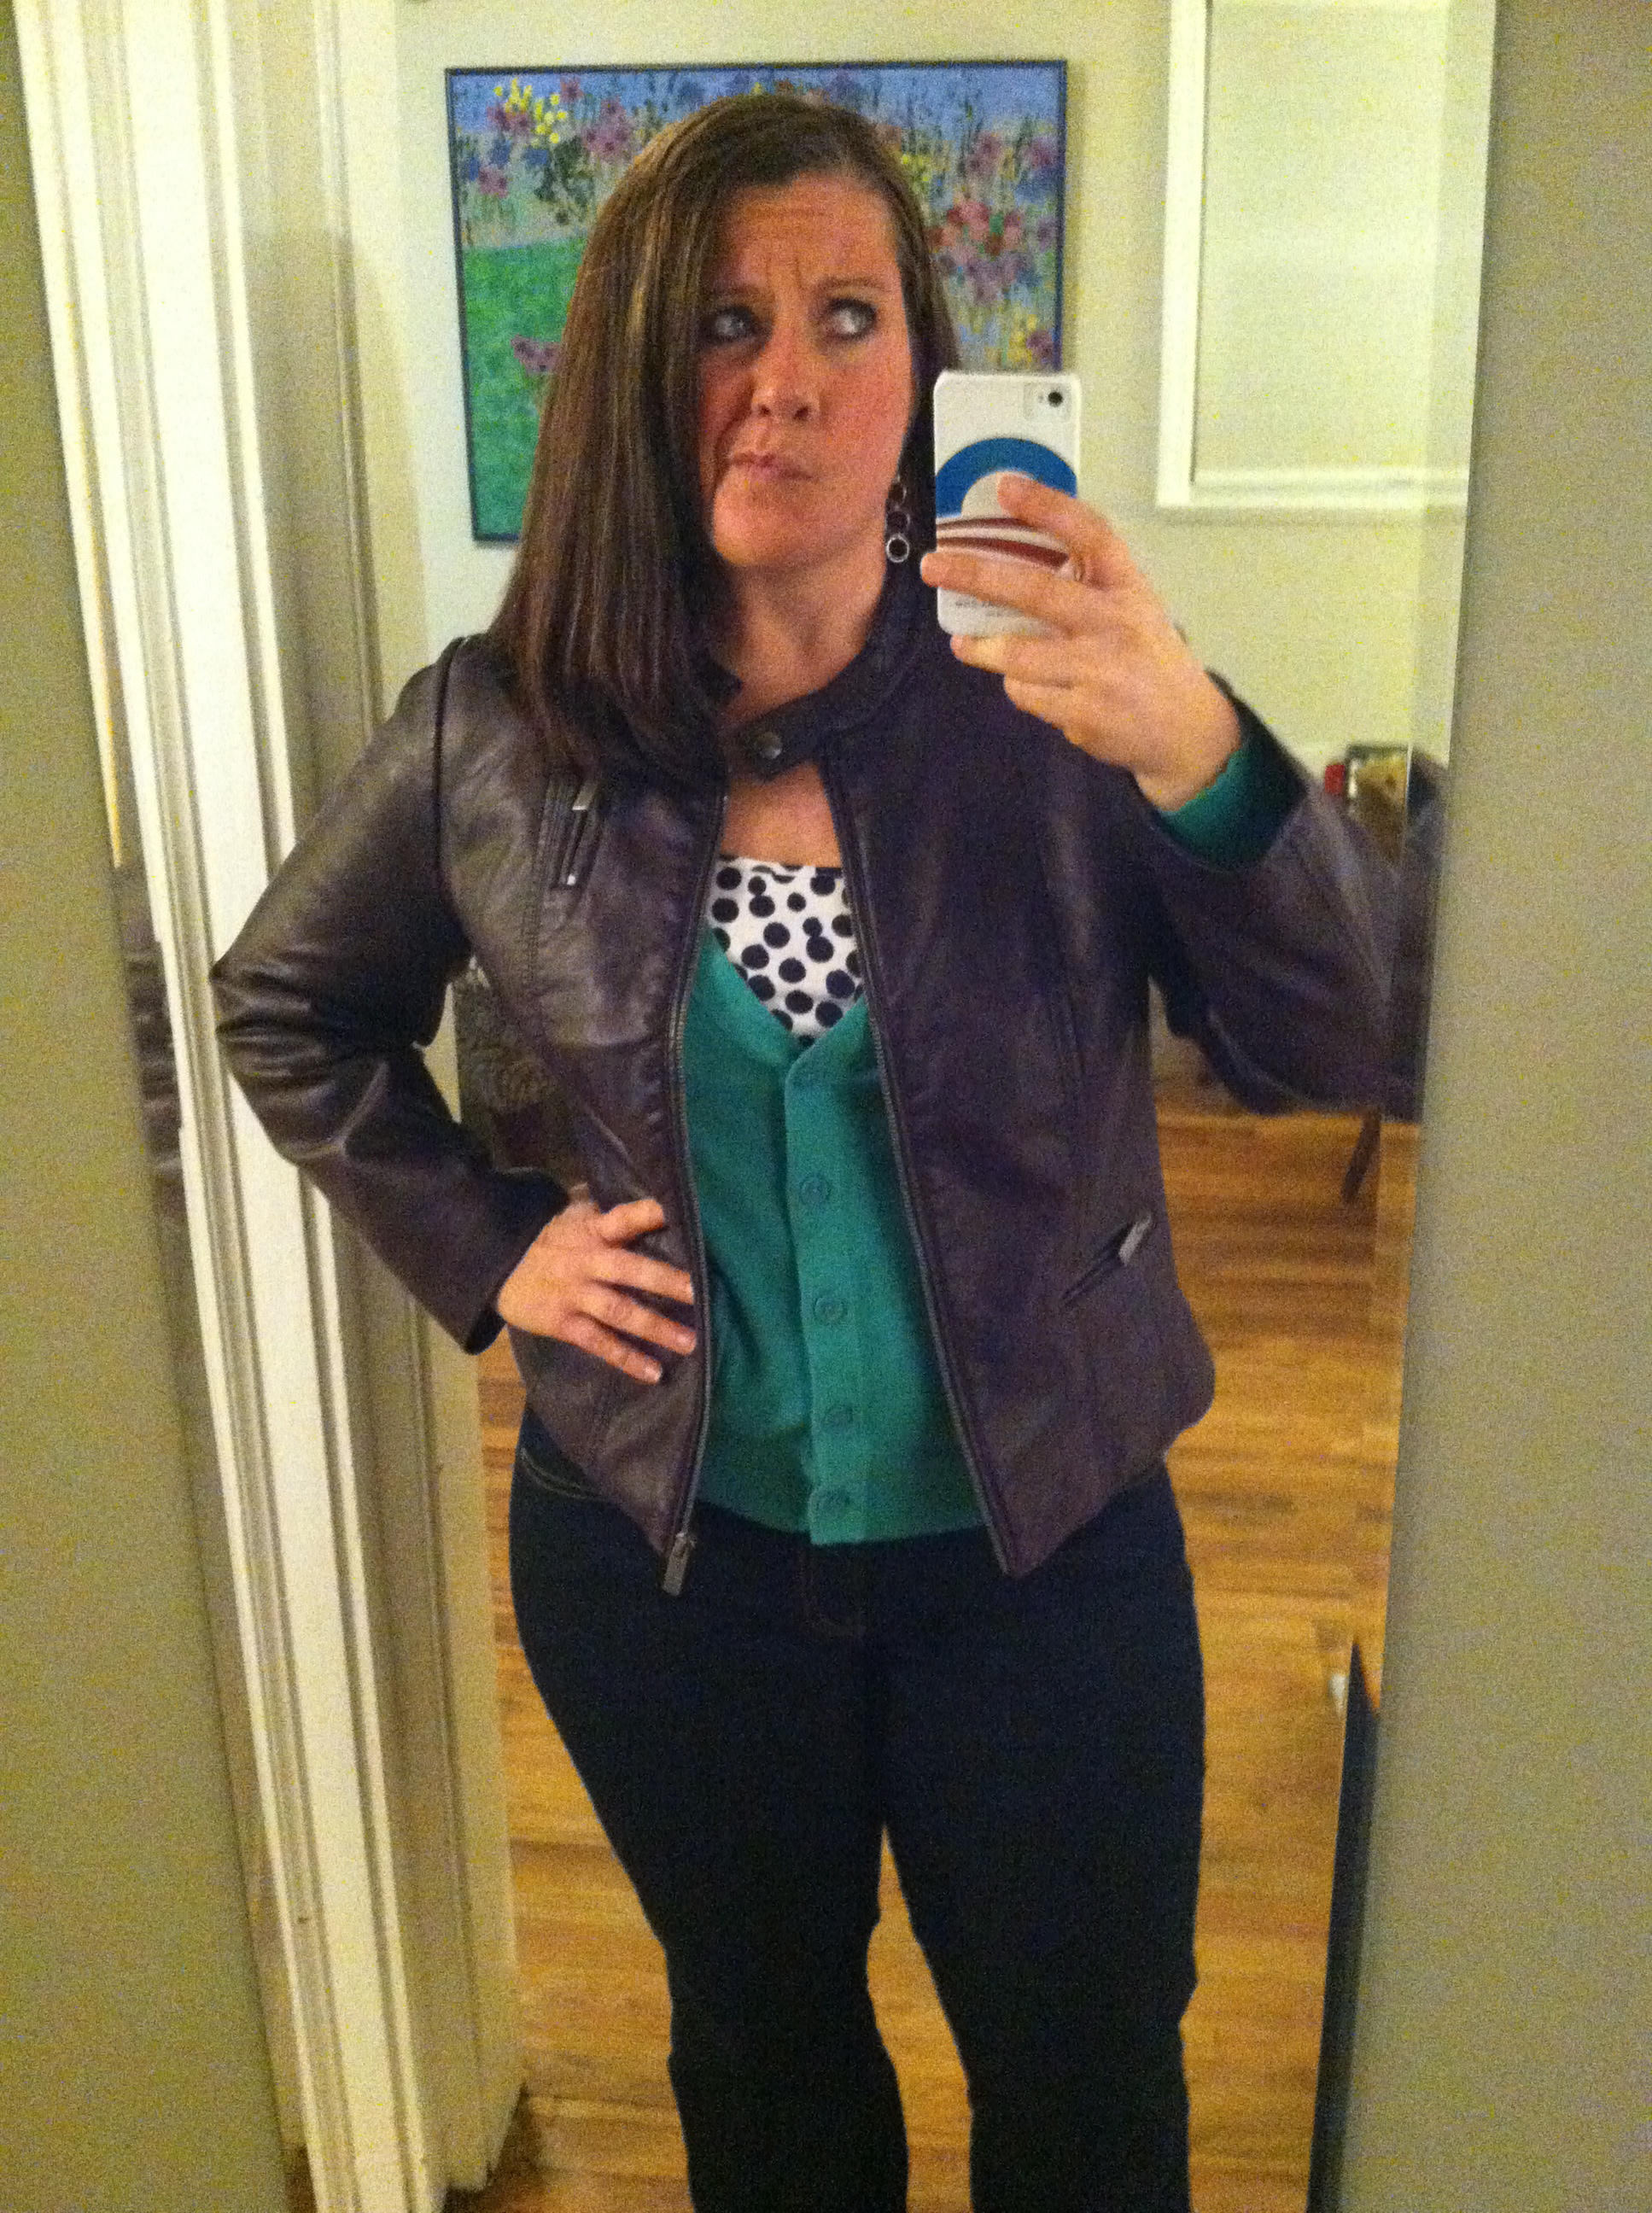 Dark jeans, patterned camisole, turquoise cardigan, and purple pleather jacket. Not pictured: short boots.